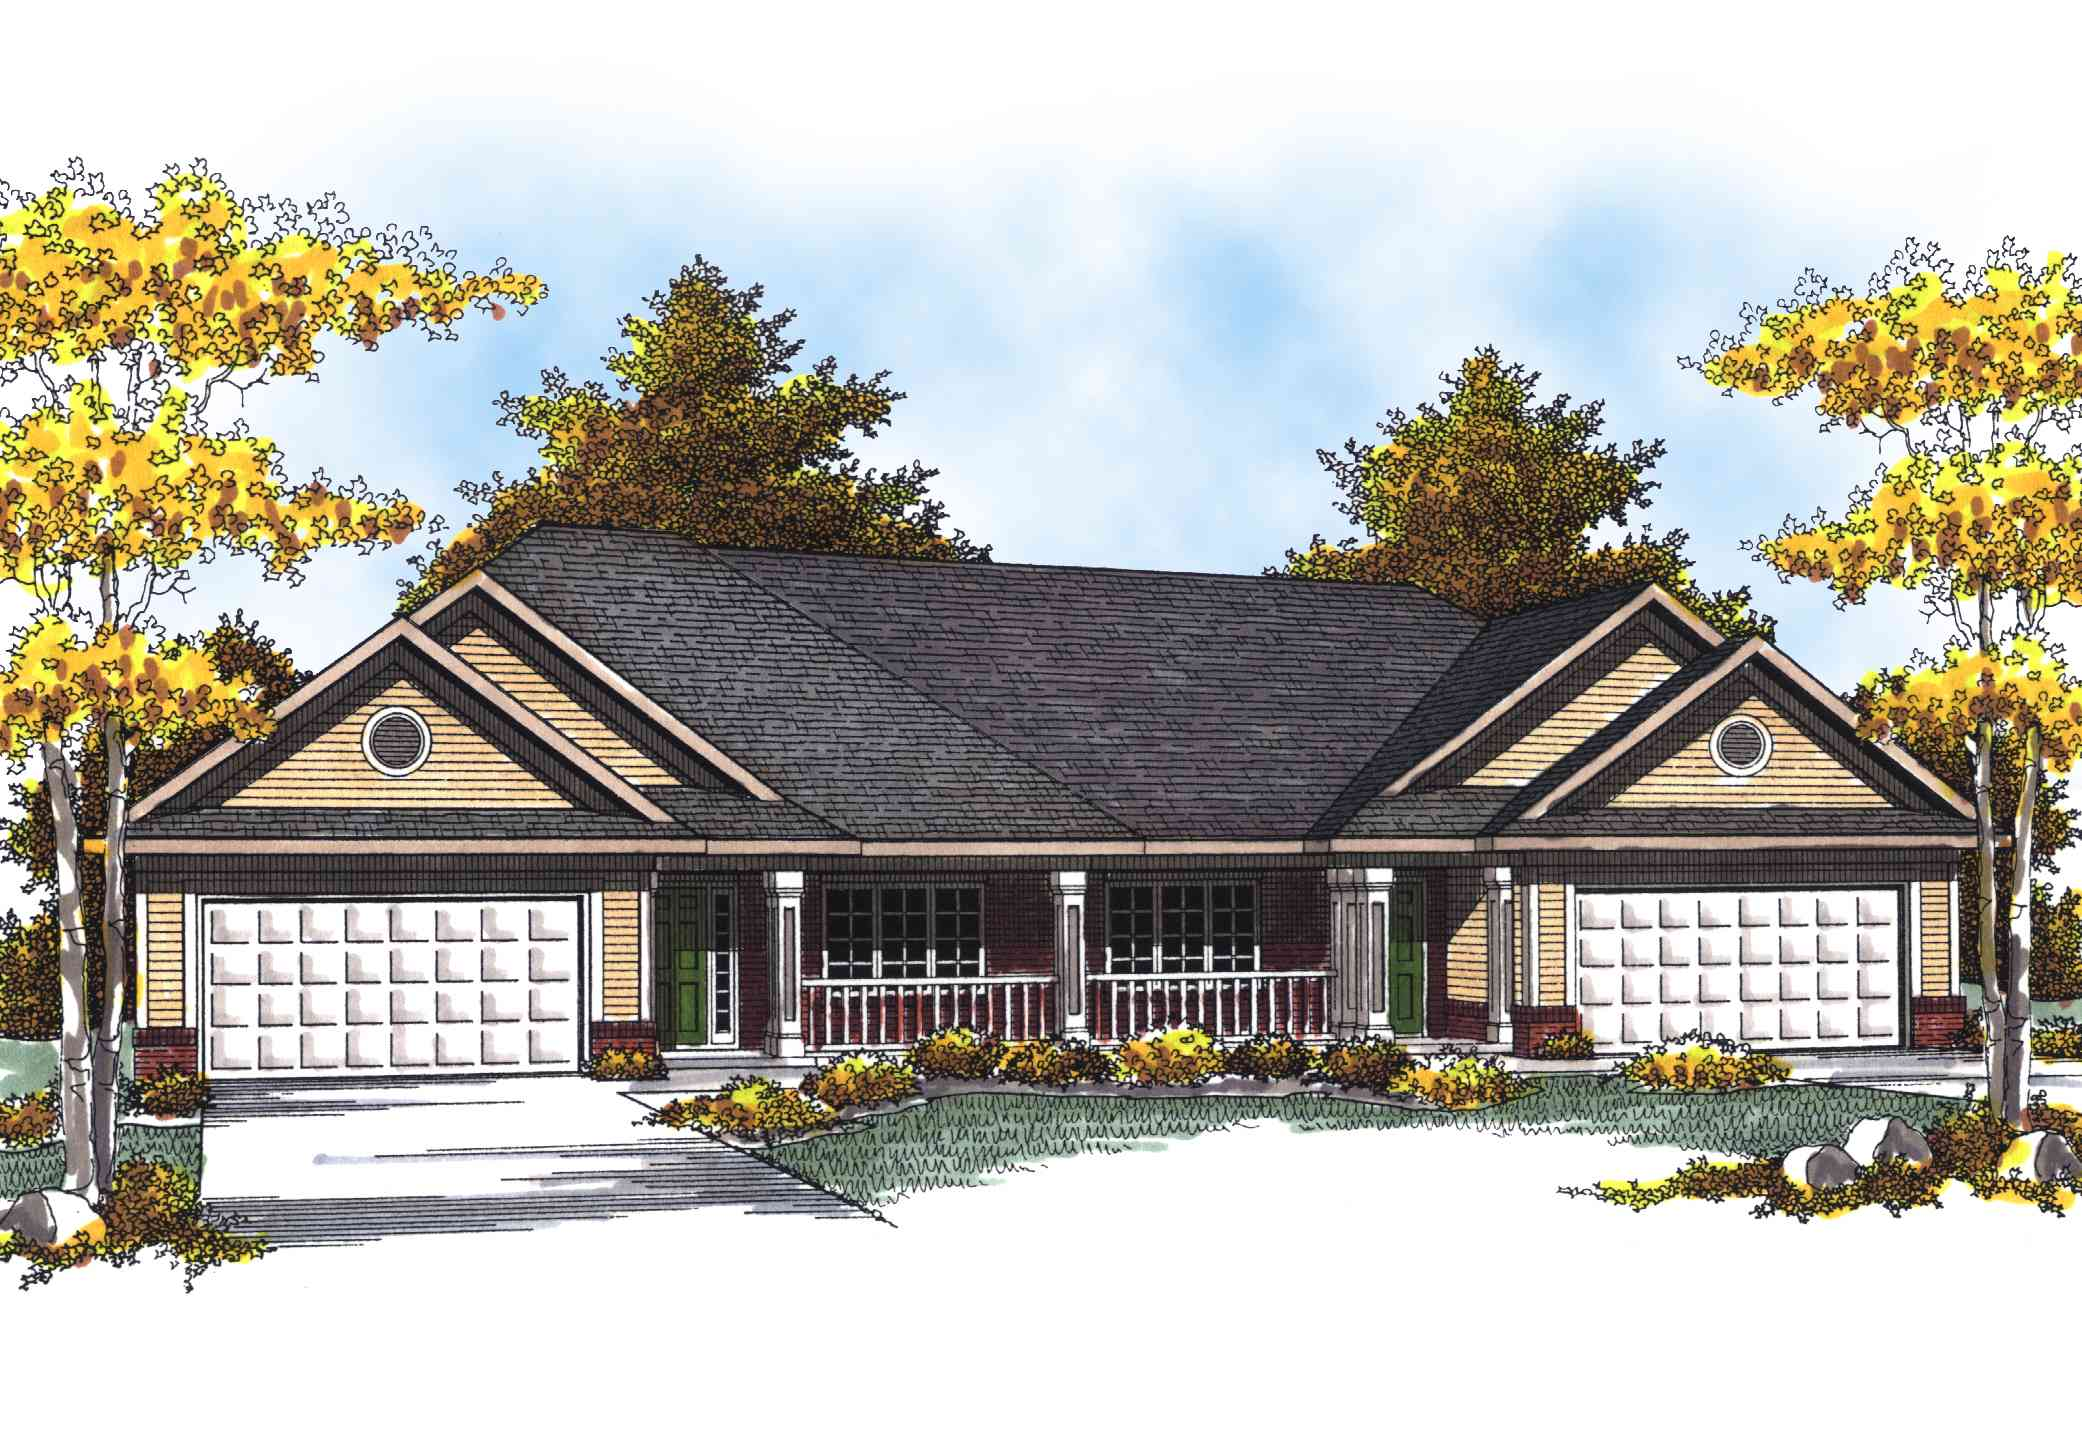 Traditional ranch duplex home plan 89293ah 1st floor for Traditional ranch house plans